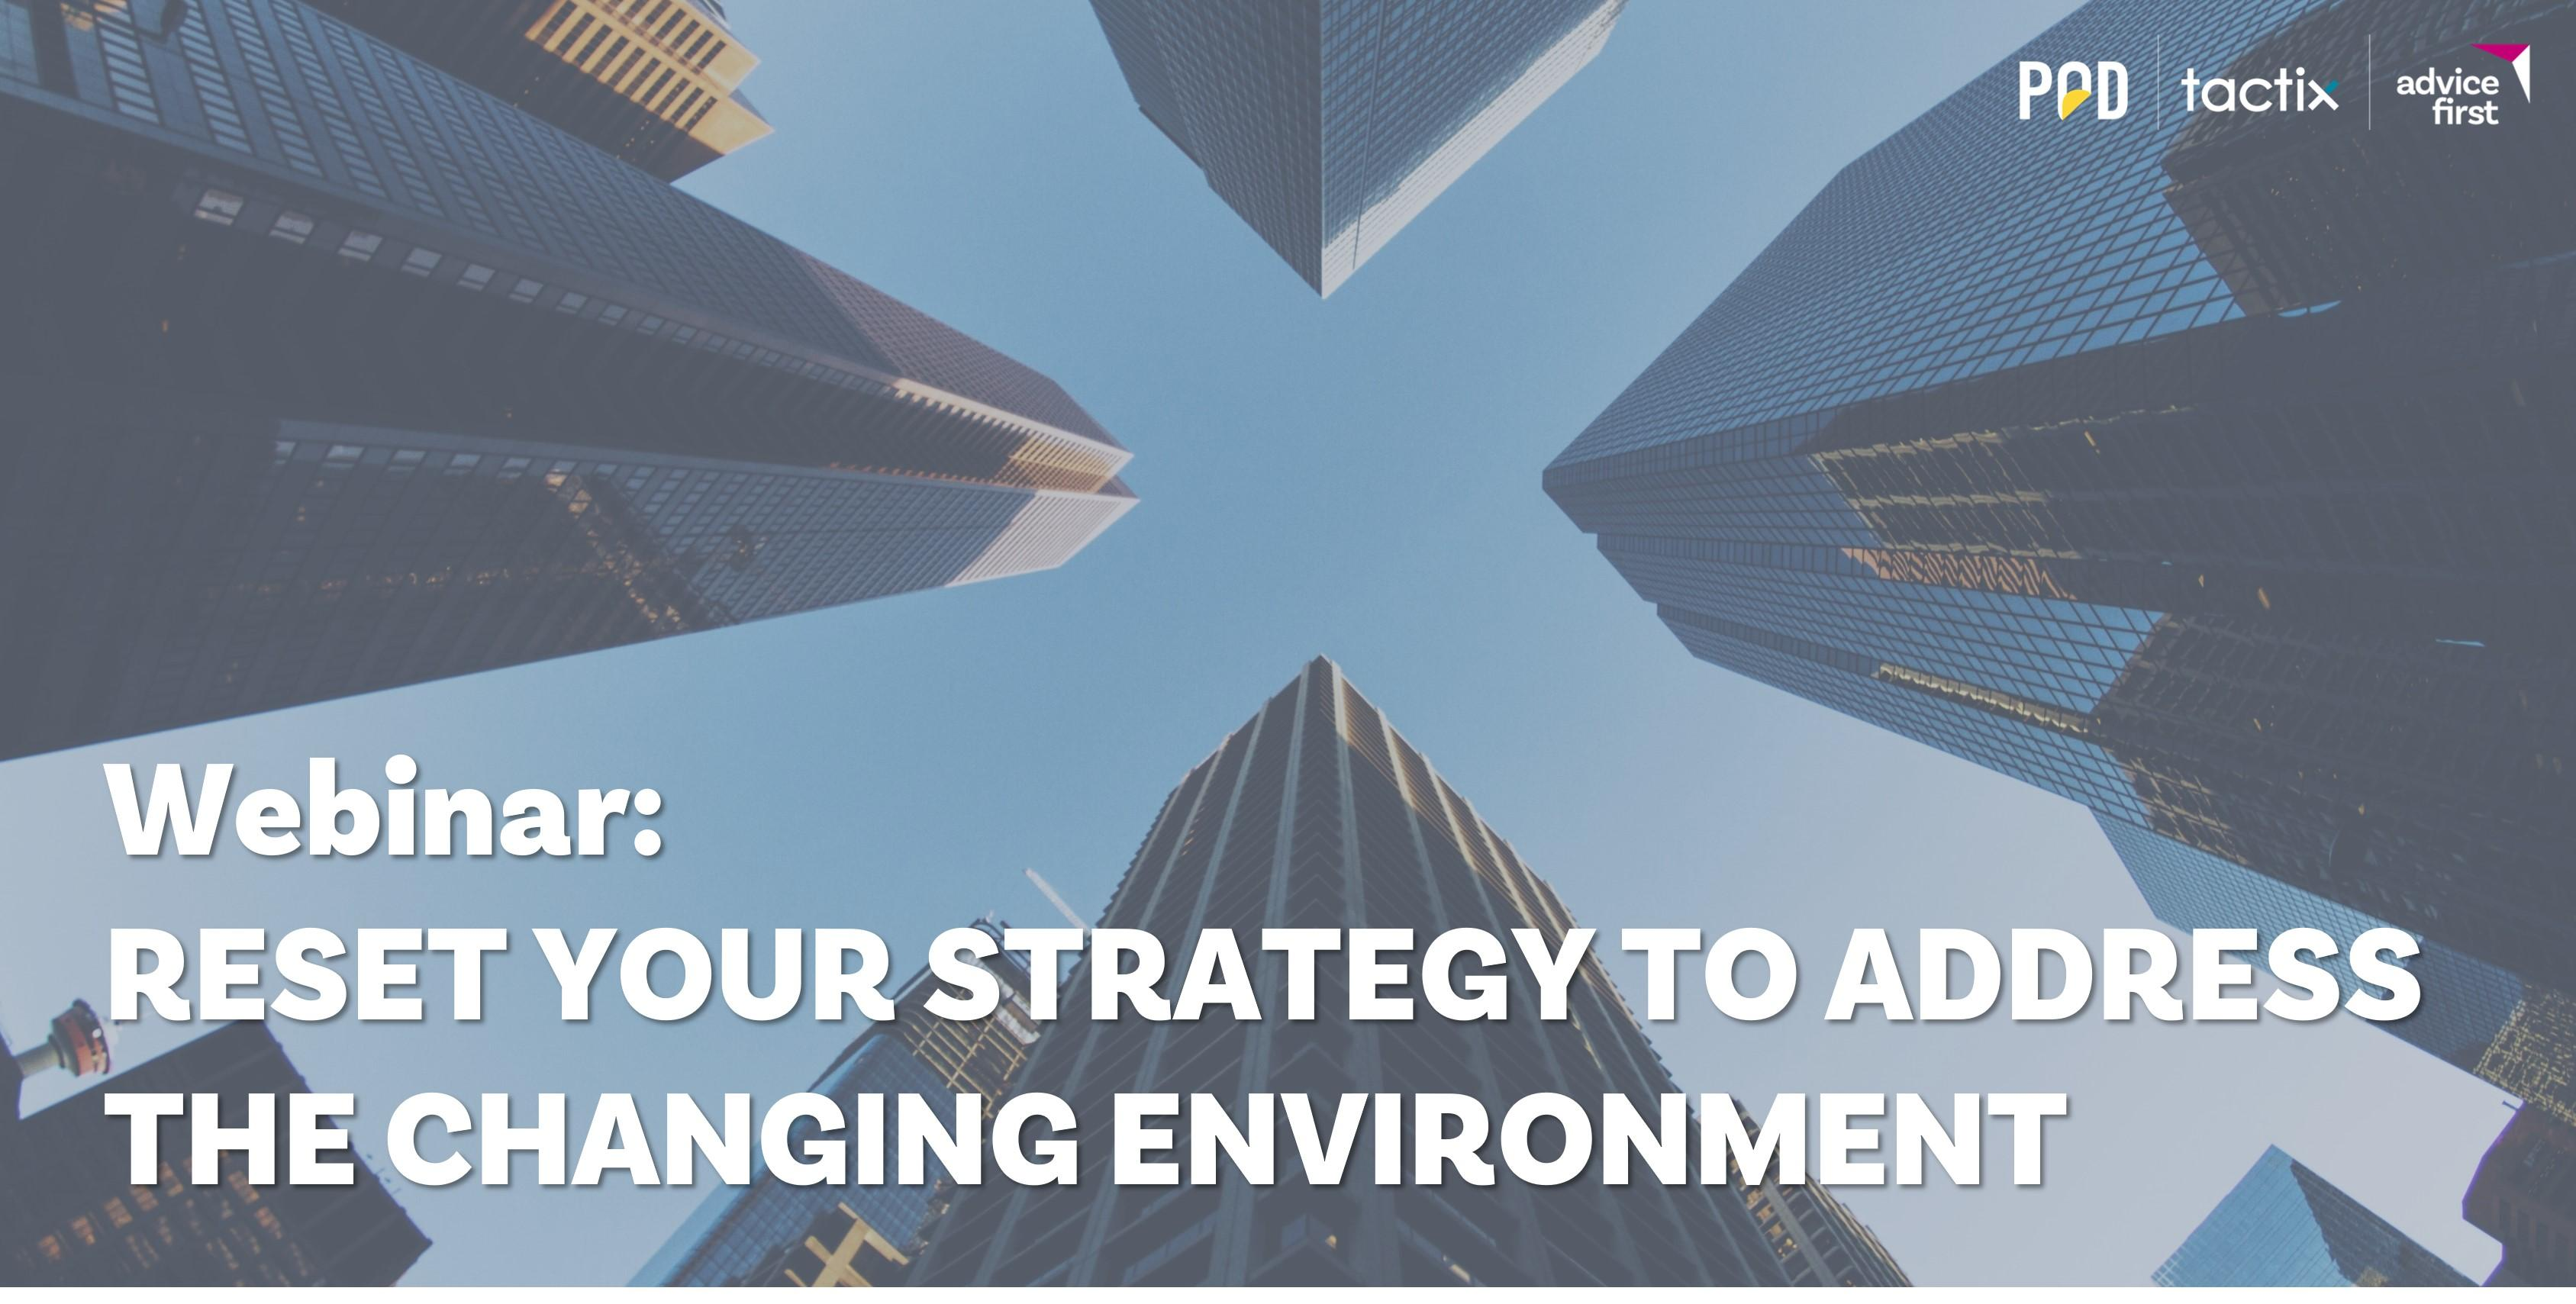 Webinar: Reset your strategy to address the changing environment